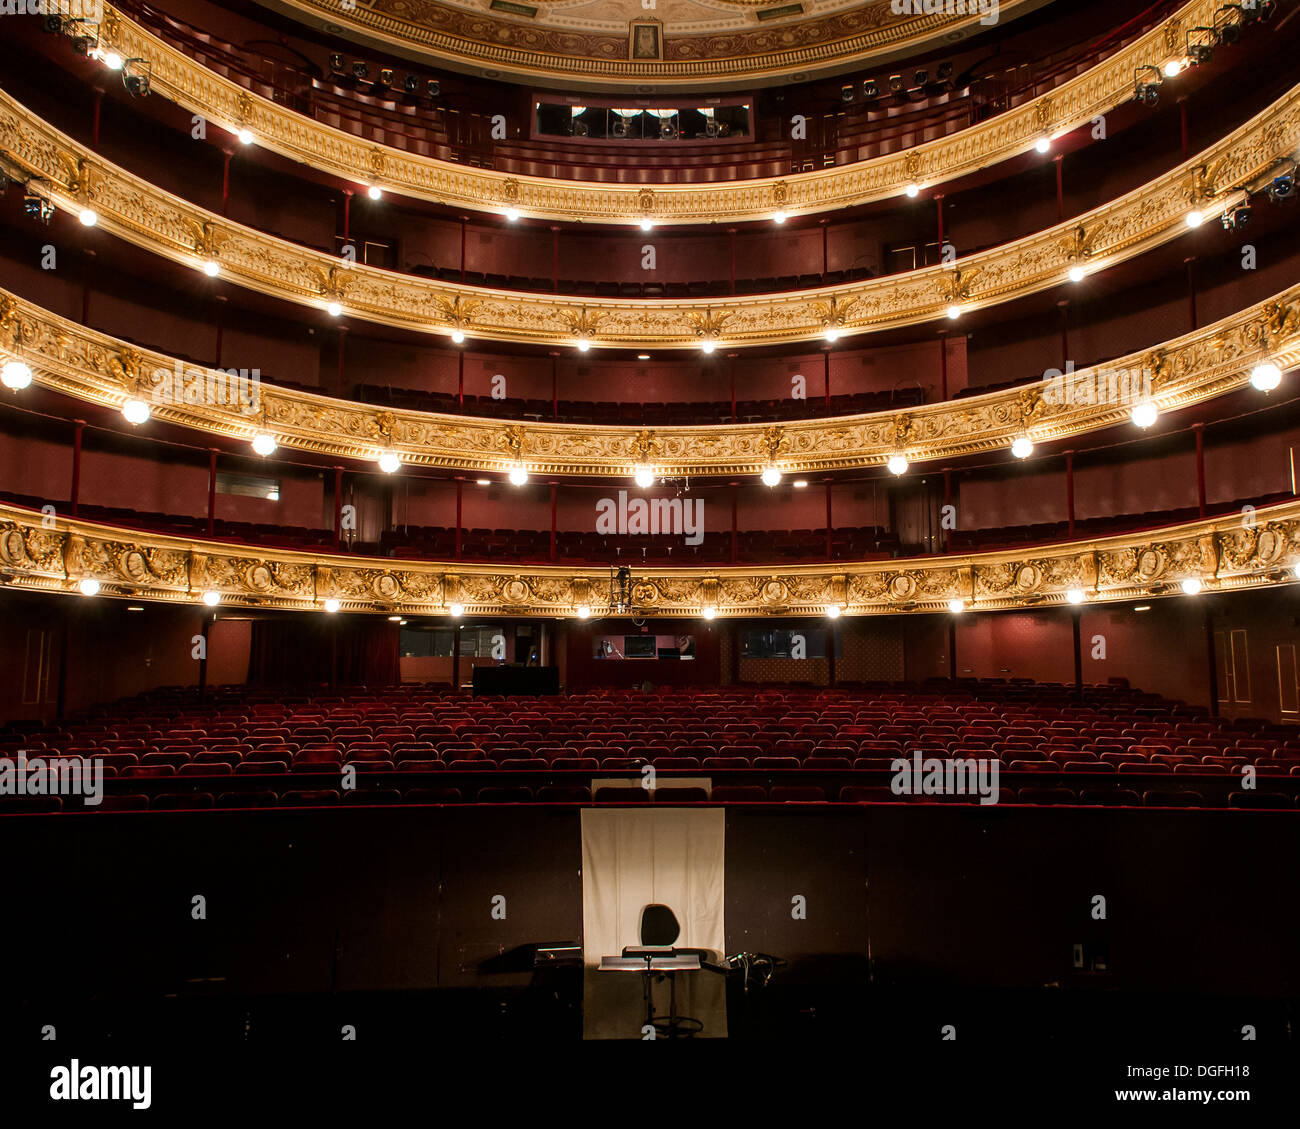 The Royal Danish Theatre (Det Kongelige Teater), Copenhagen, Denmark, 1874. Stock Photo